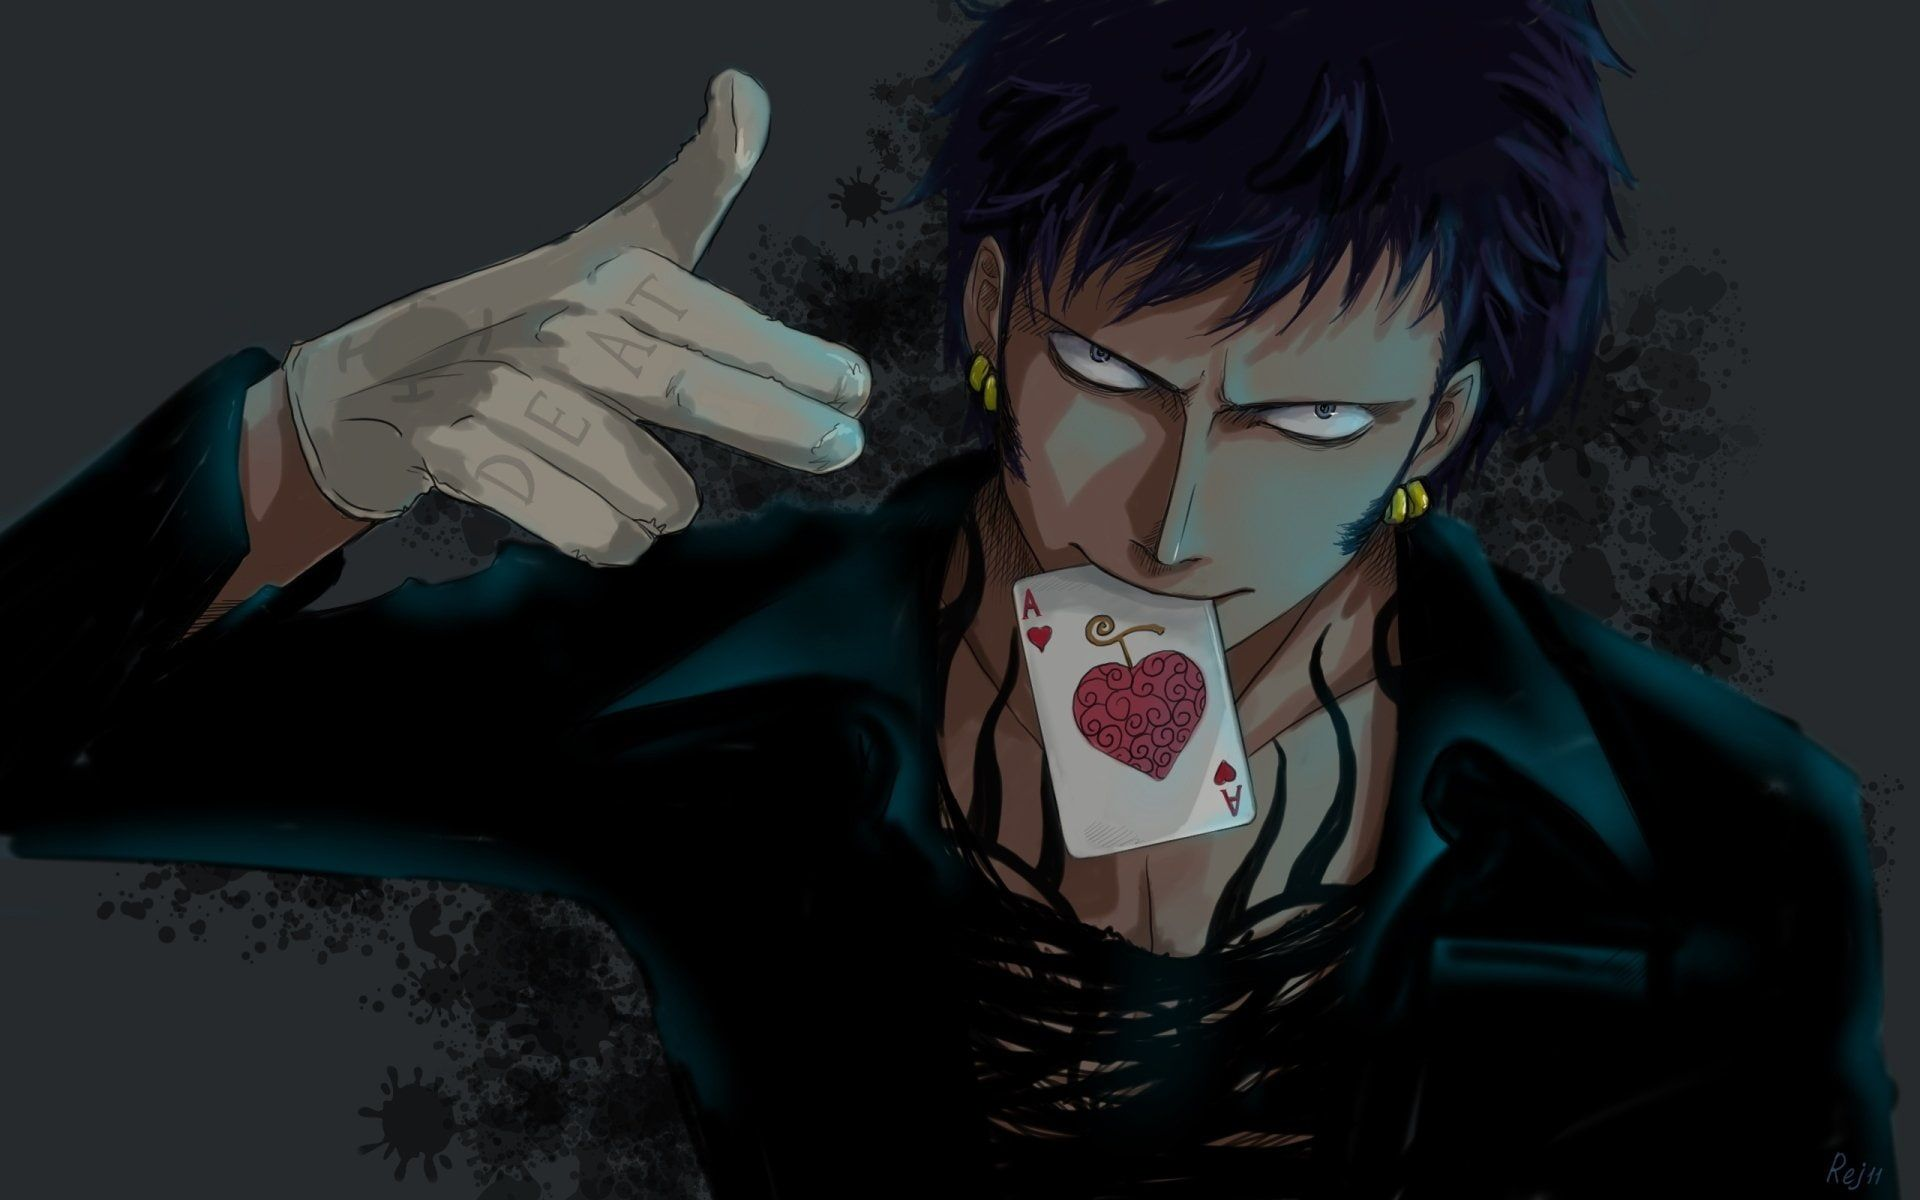 Black Haired Male Anime Character Wallpaper Anime One Piece Trafalgar Law 1080p Wallpaper Top Anime Characters Character Wallpaper Trafalgar Law Wallpapers